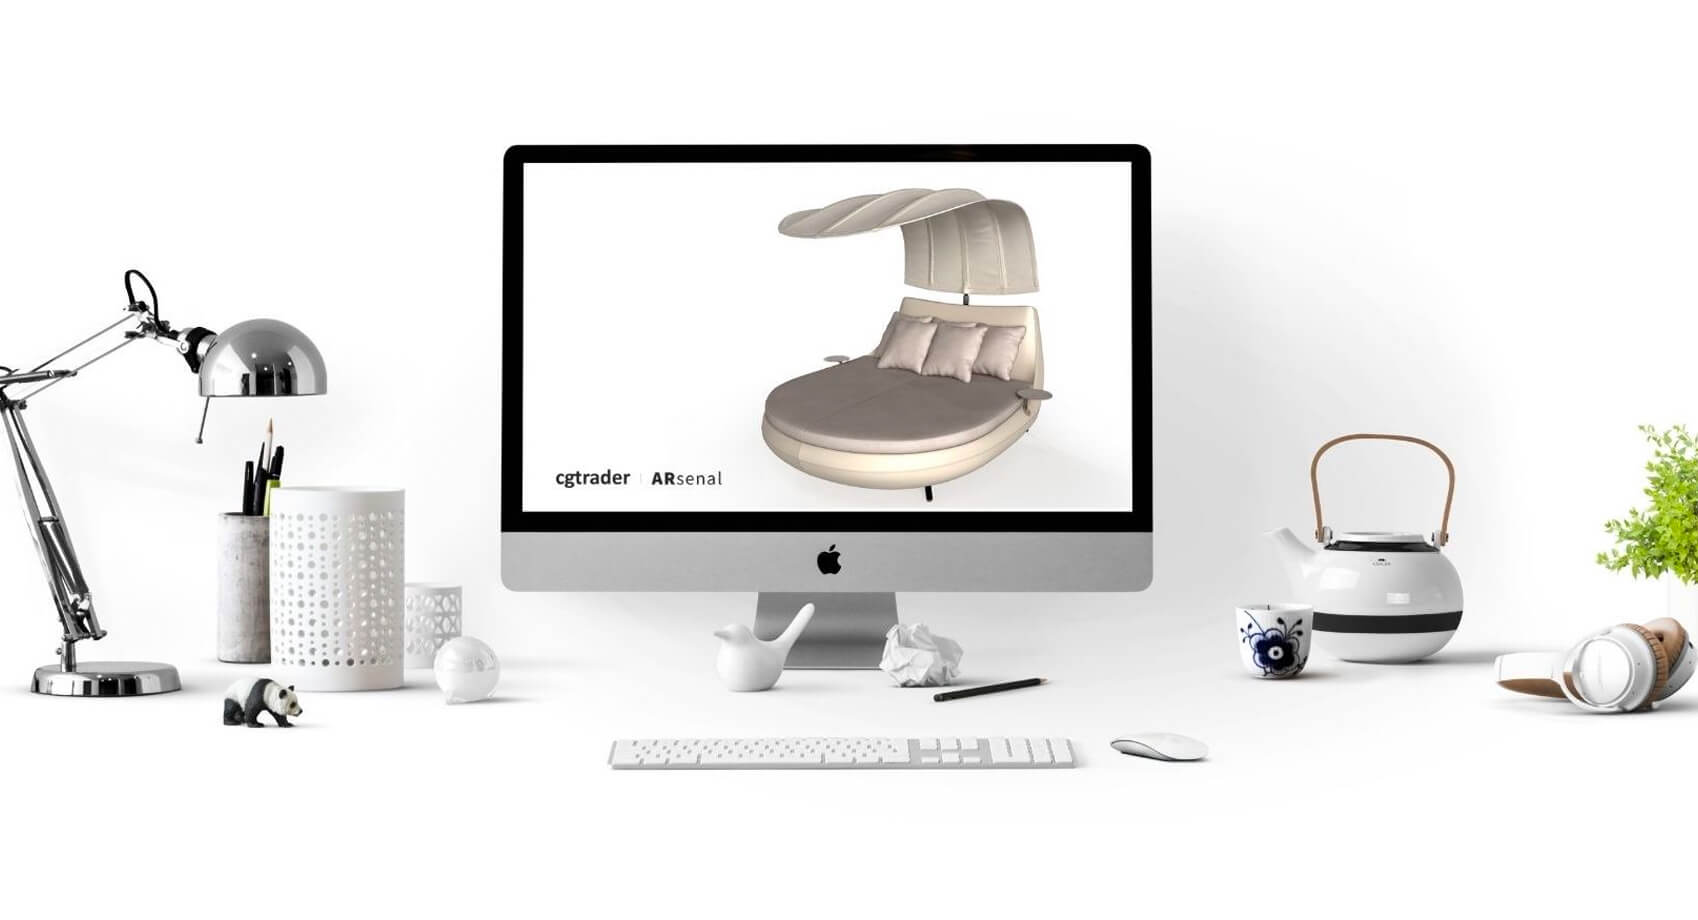 3D Viewer: Bring a New Competitive Edge to Your Business